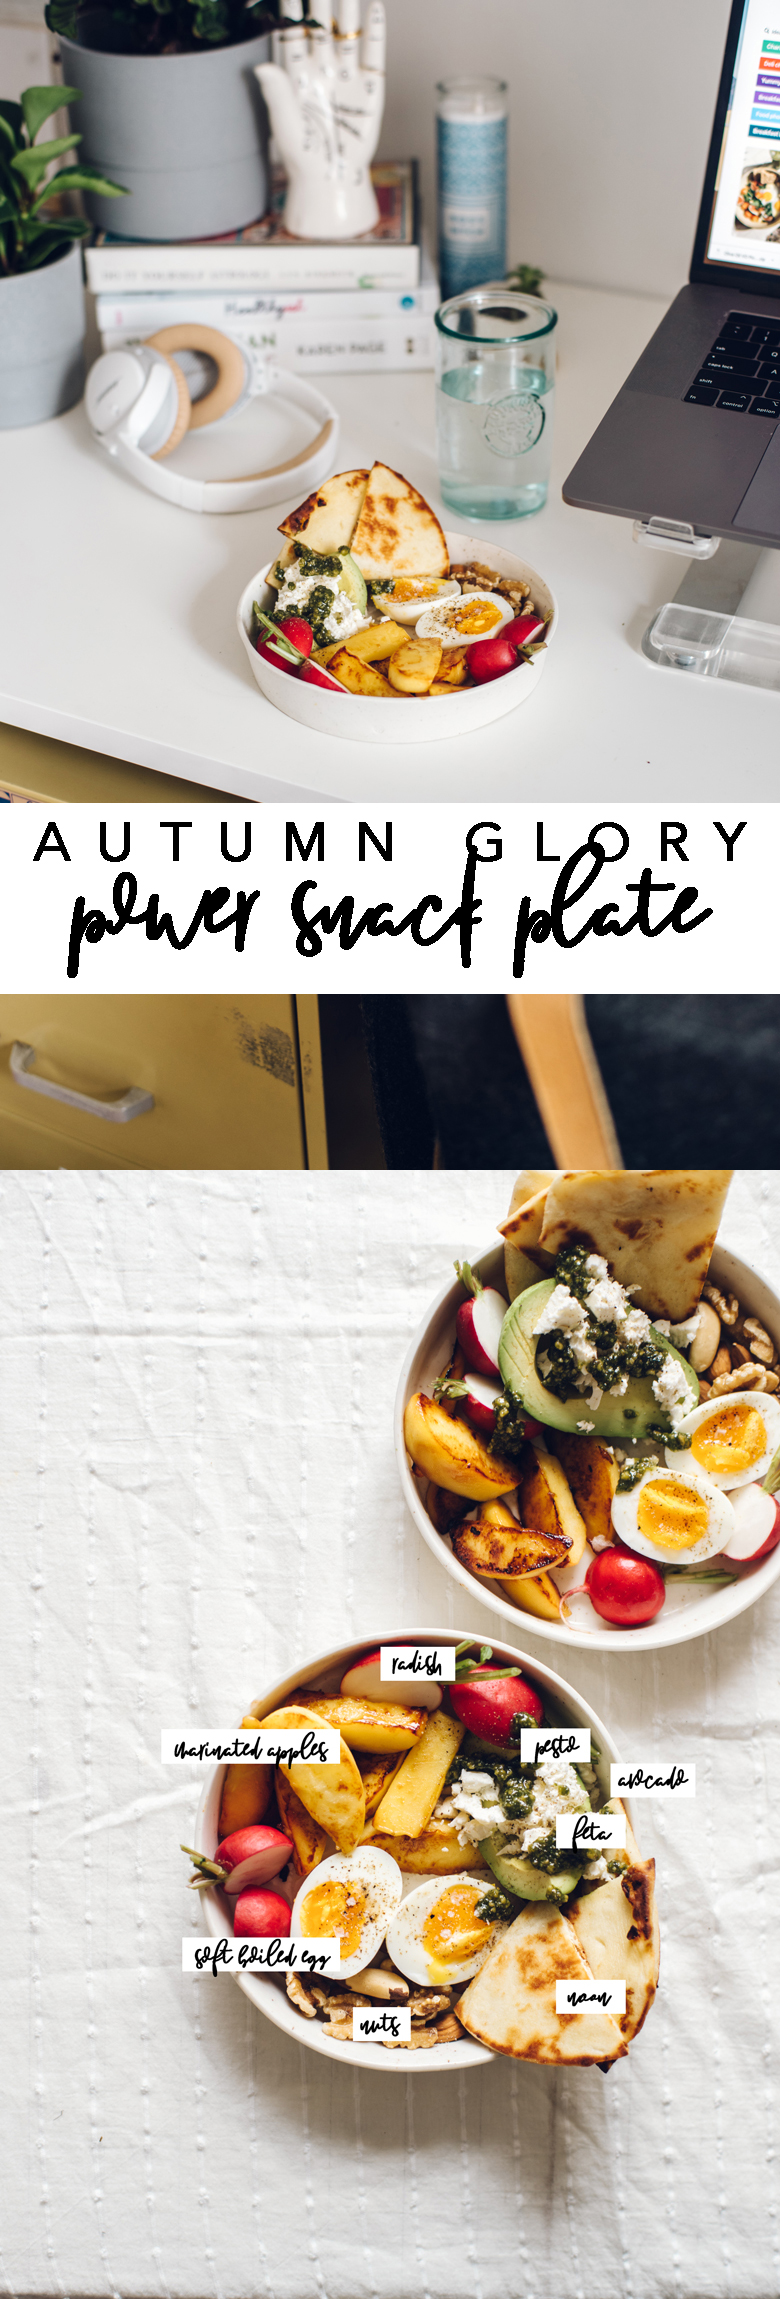 This Autumn Glory Power Snack Plate is a unique, savory snack dish that is packed with healthy fats and protein to keep you satisfied when you need it most! #apples #snack #snackplate #healthy #healthyfats #avocado #autumnglory   Brewing Happiness